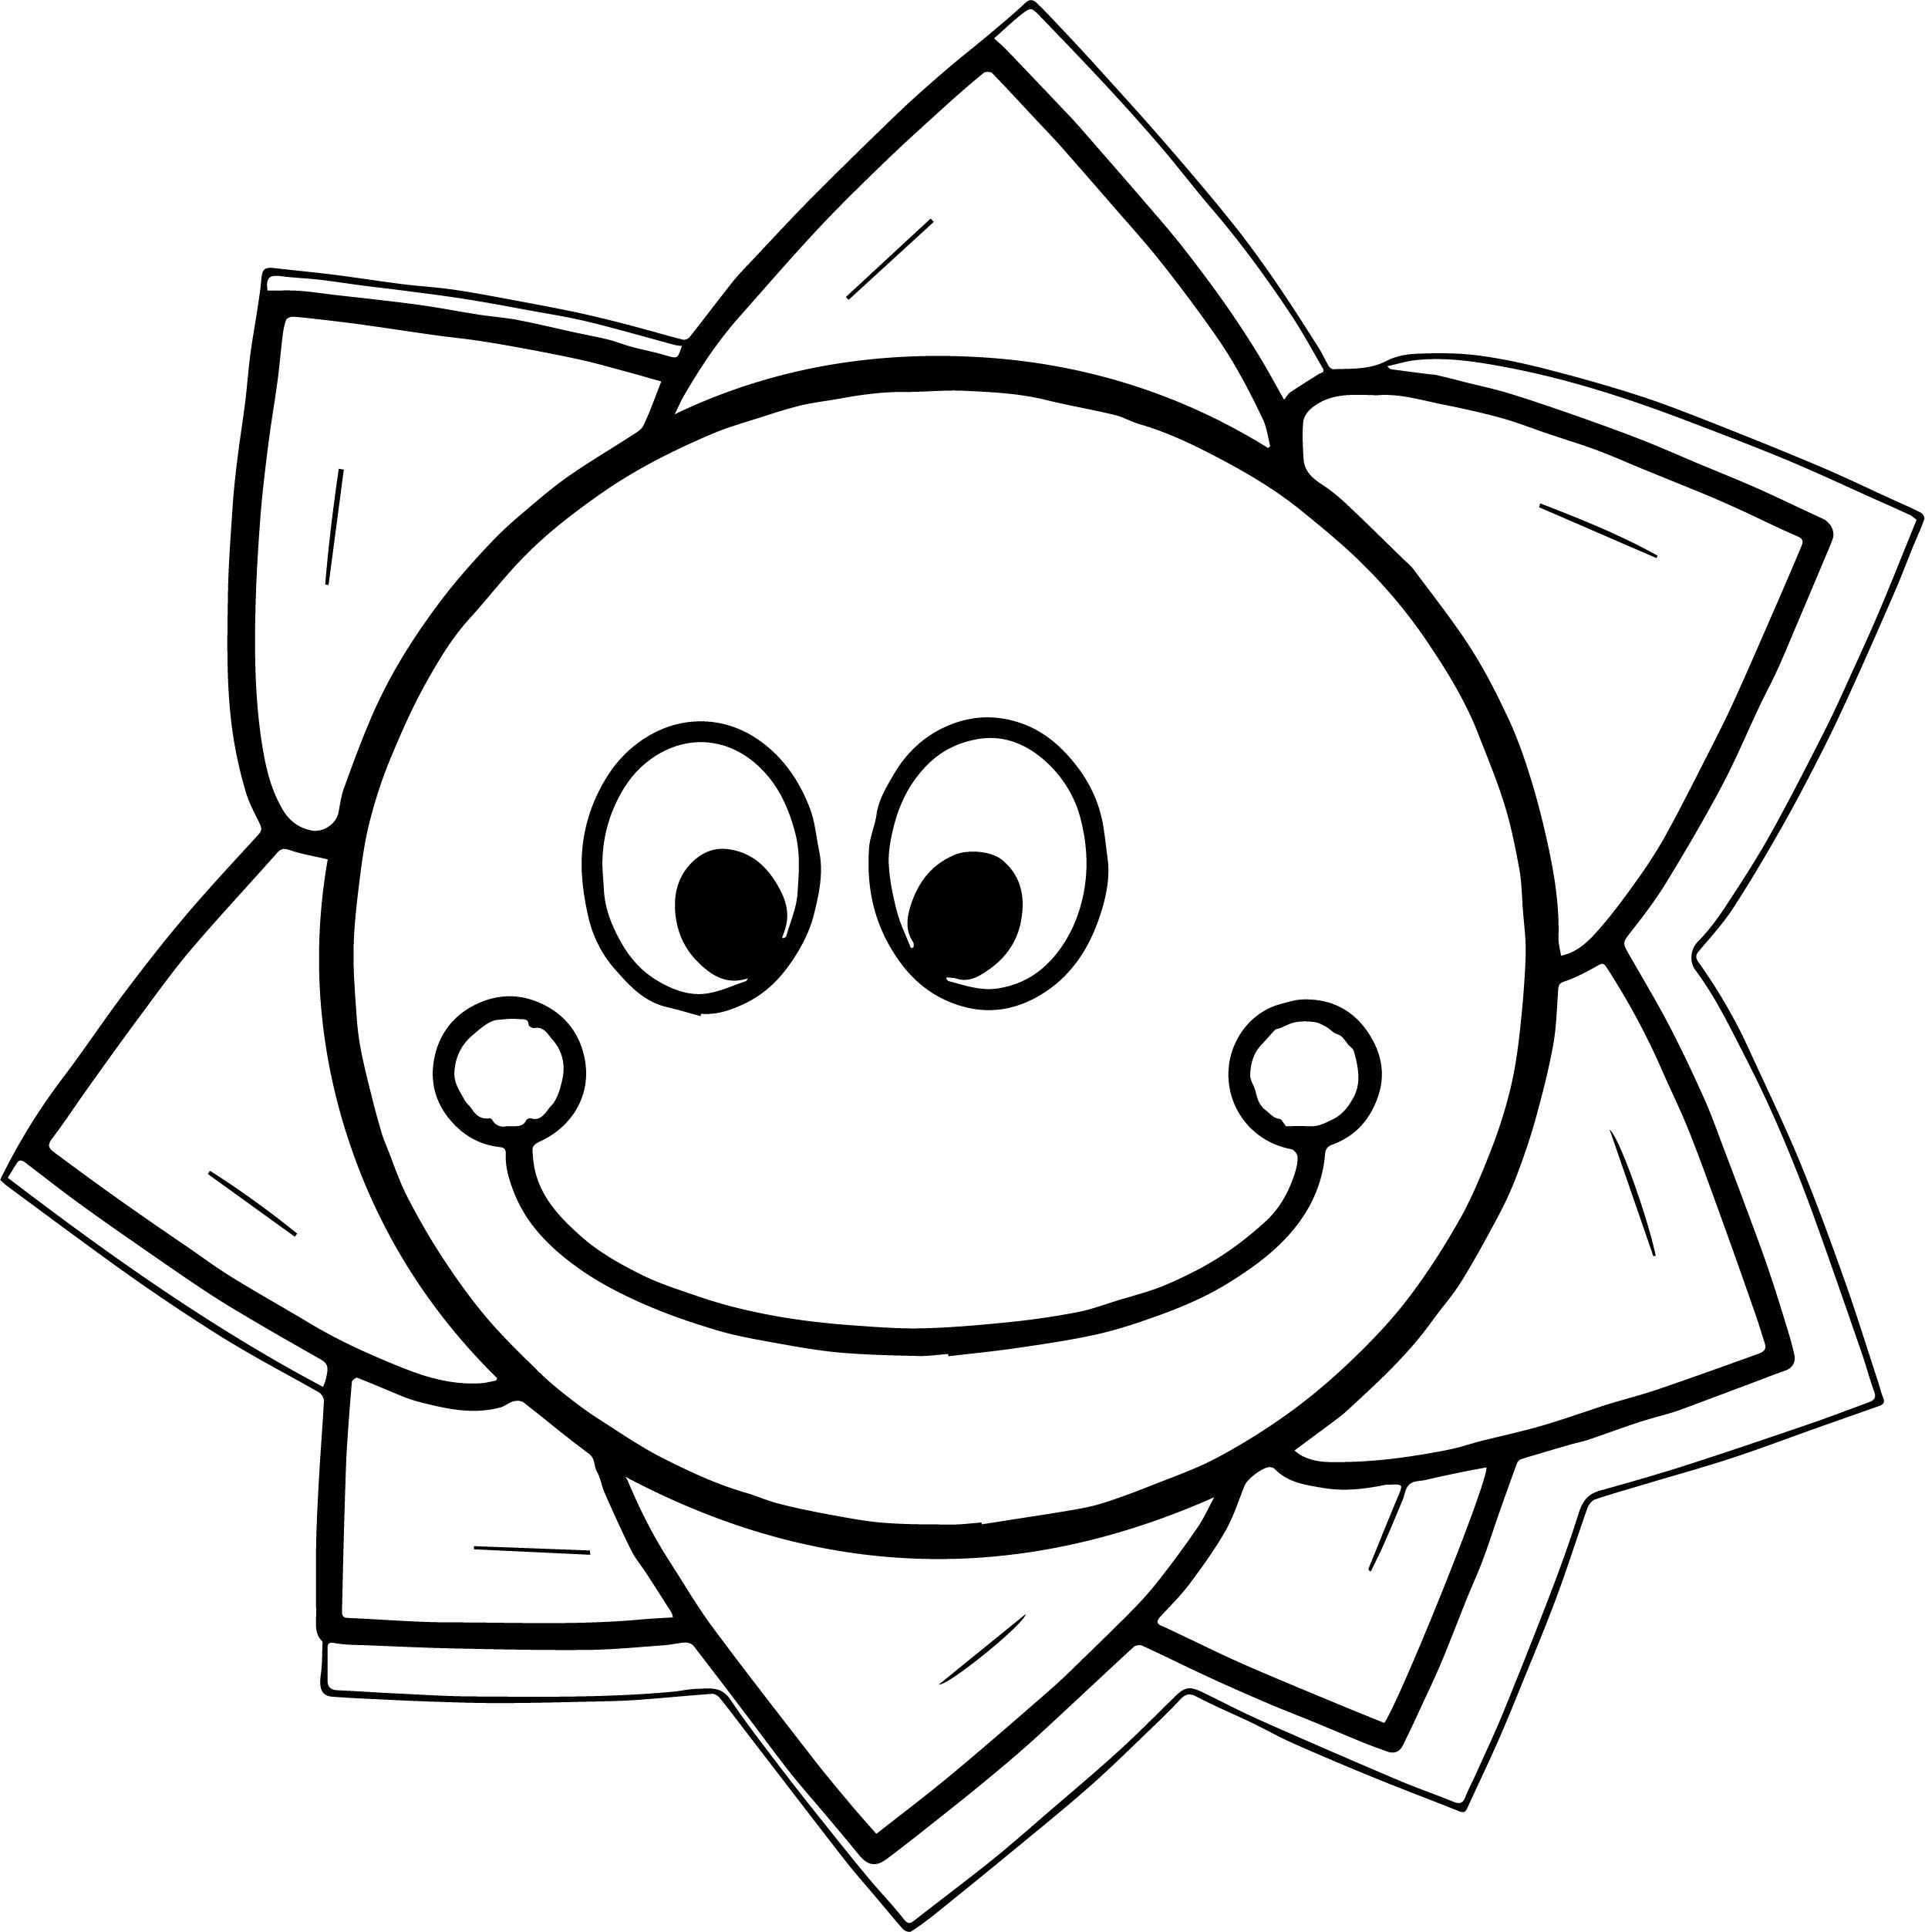 Cool Happy Star Flower Coloring Page With Images